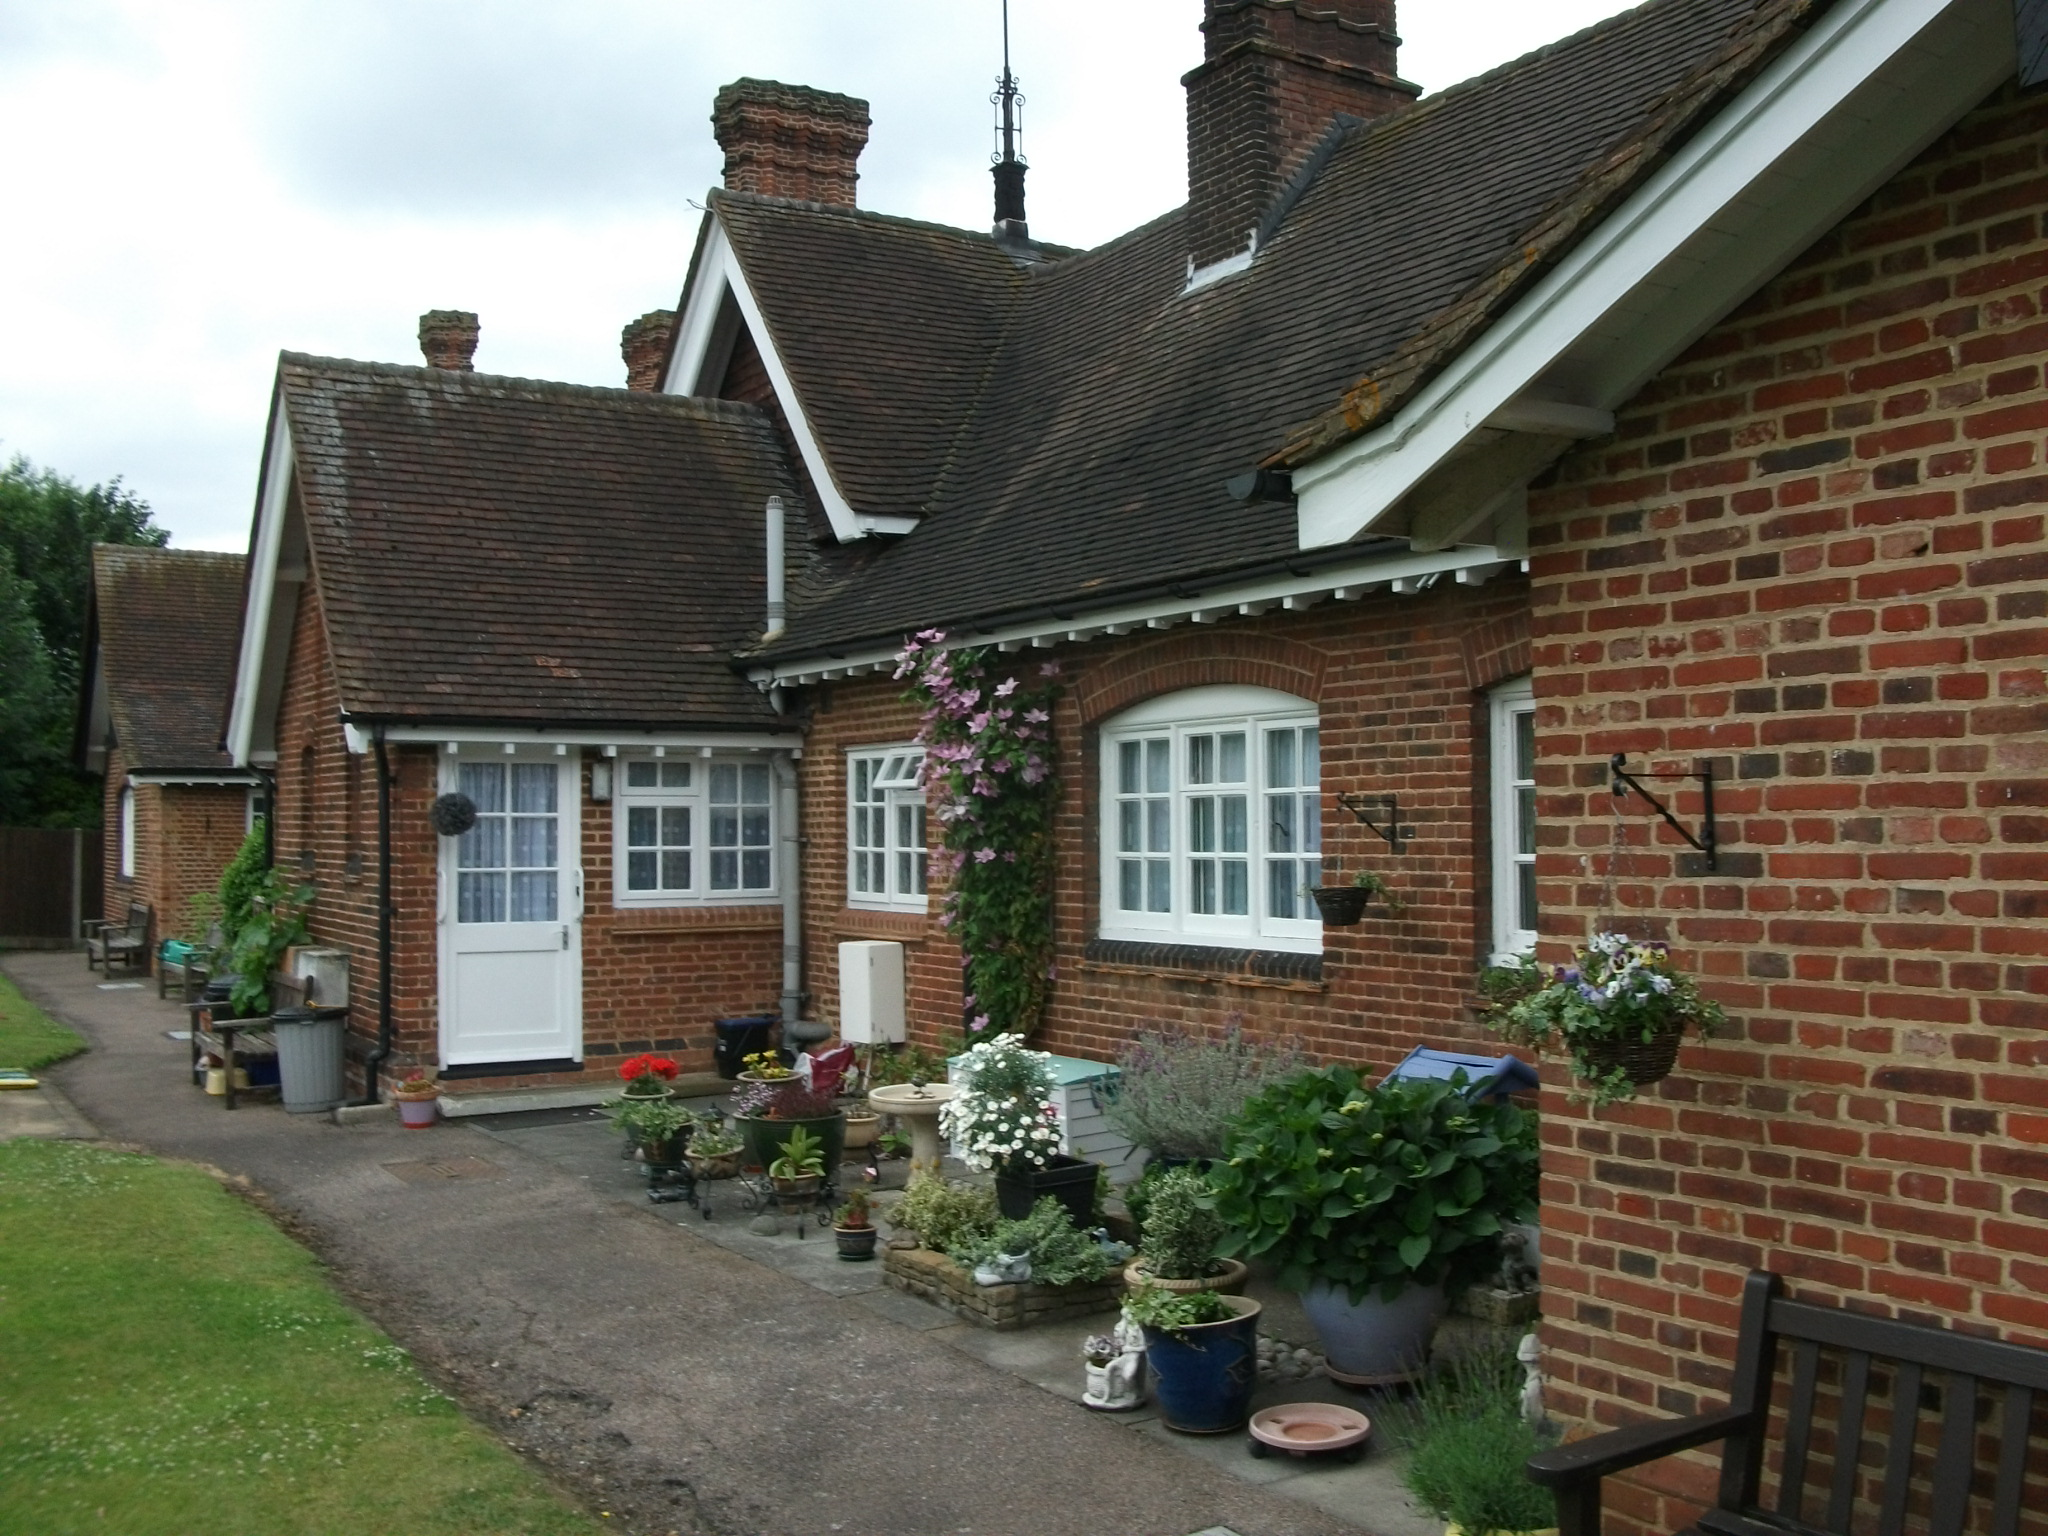 Shen Place Almshouses garden view showing pots and hanging baskets